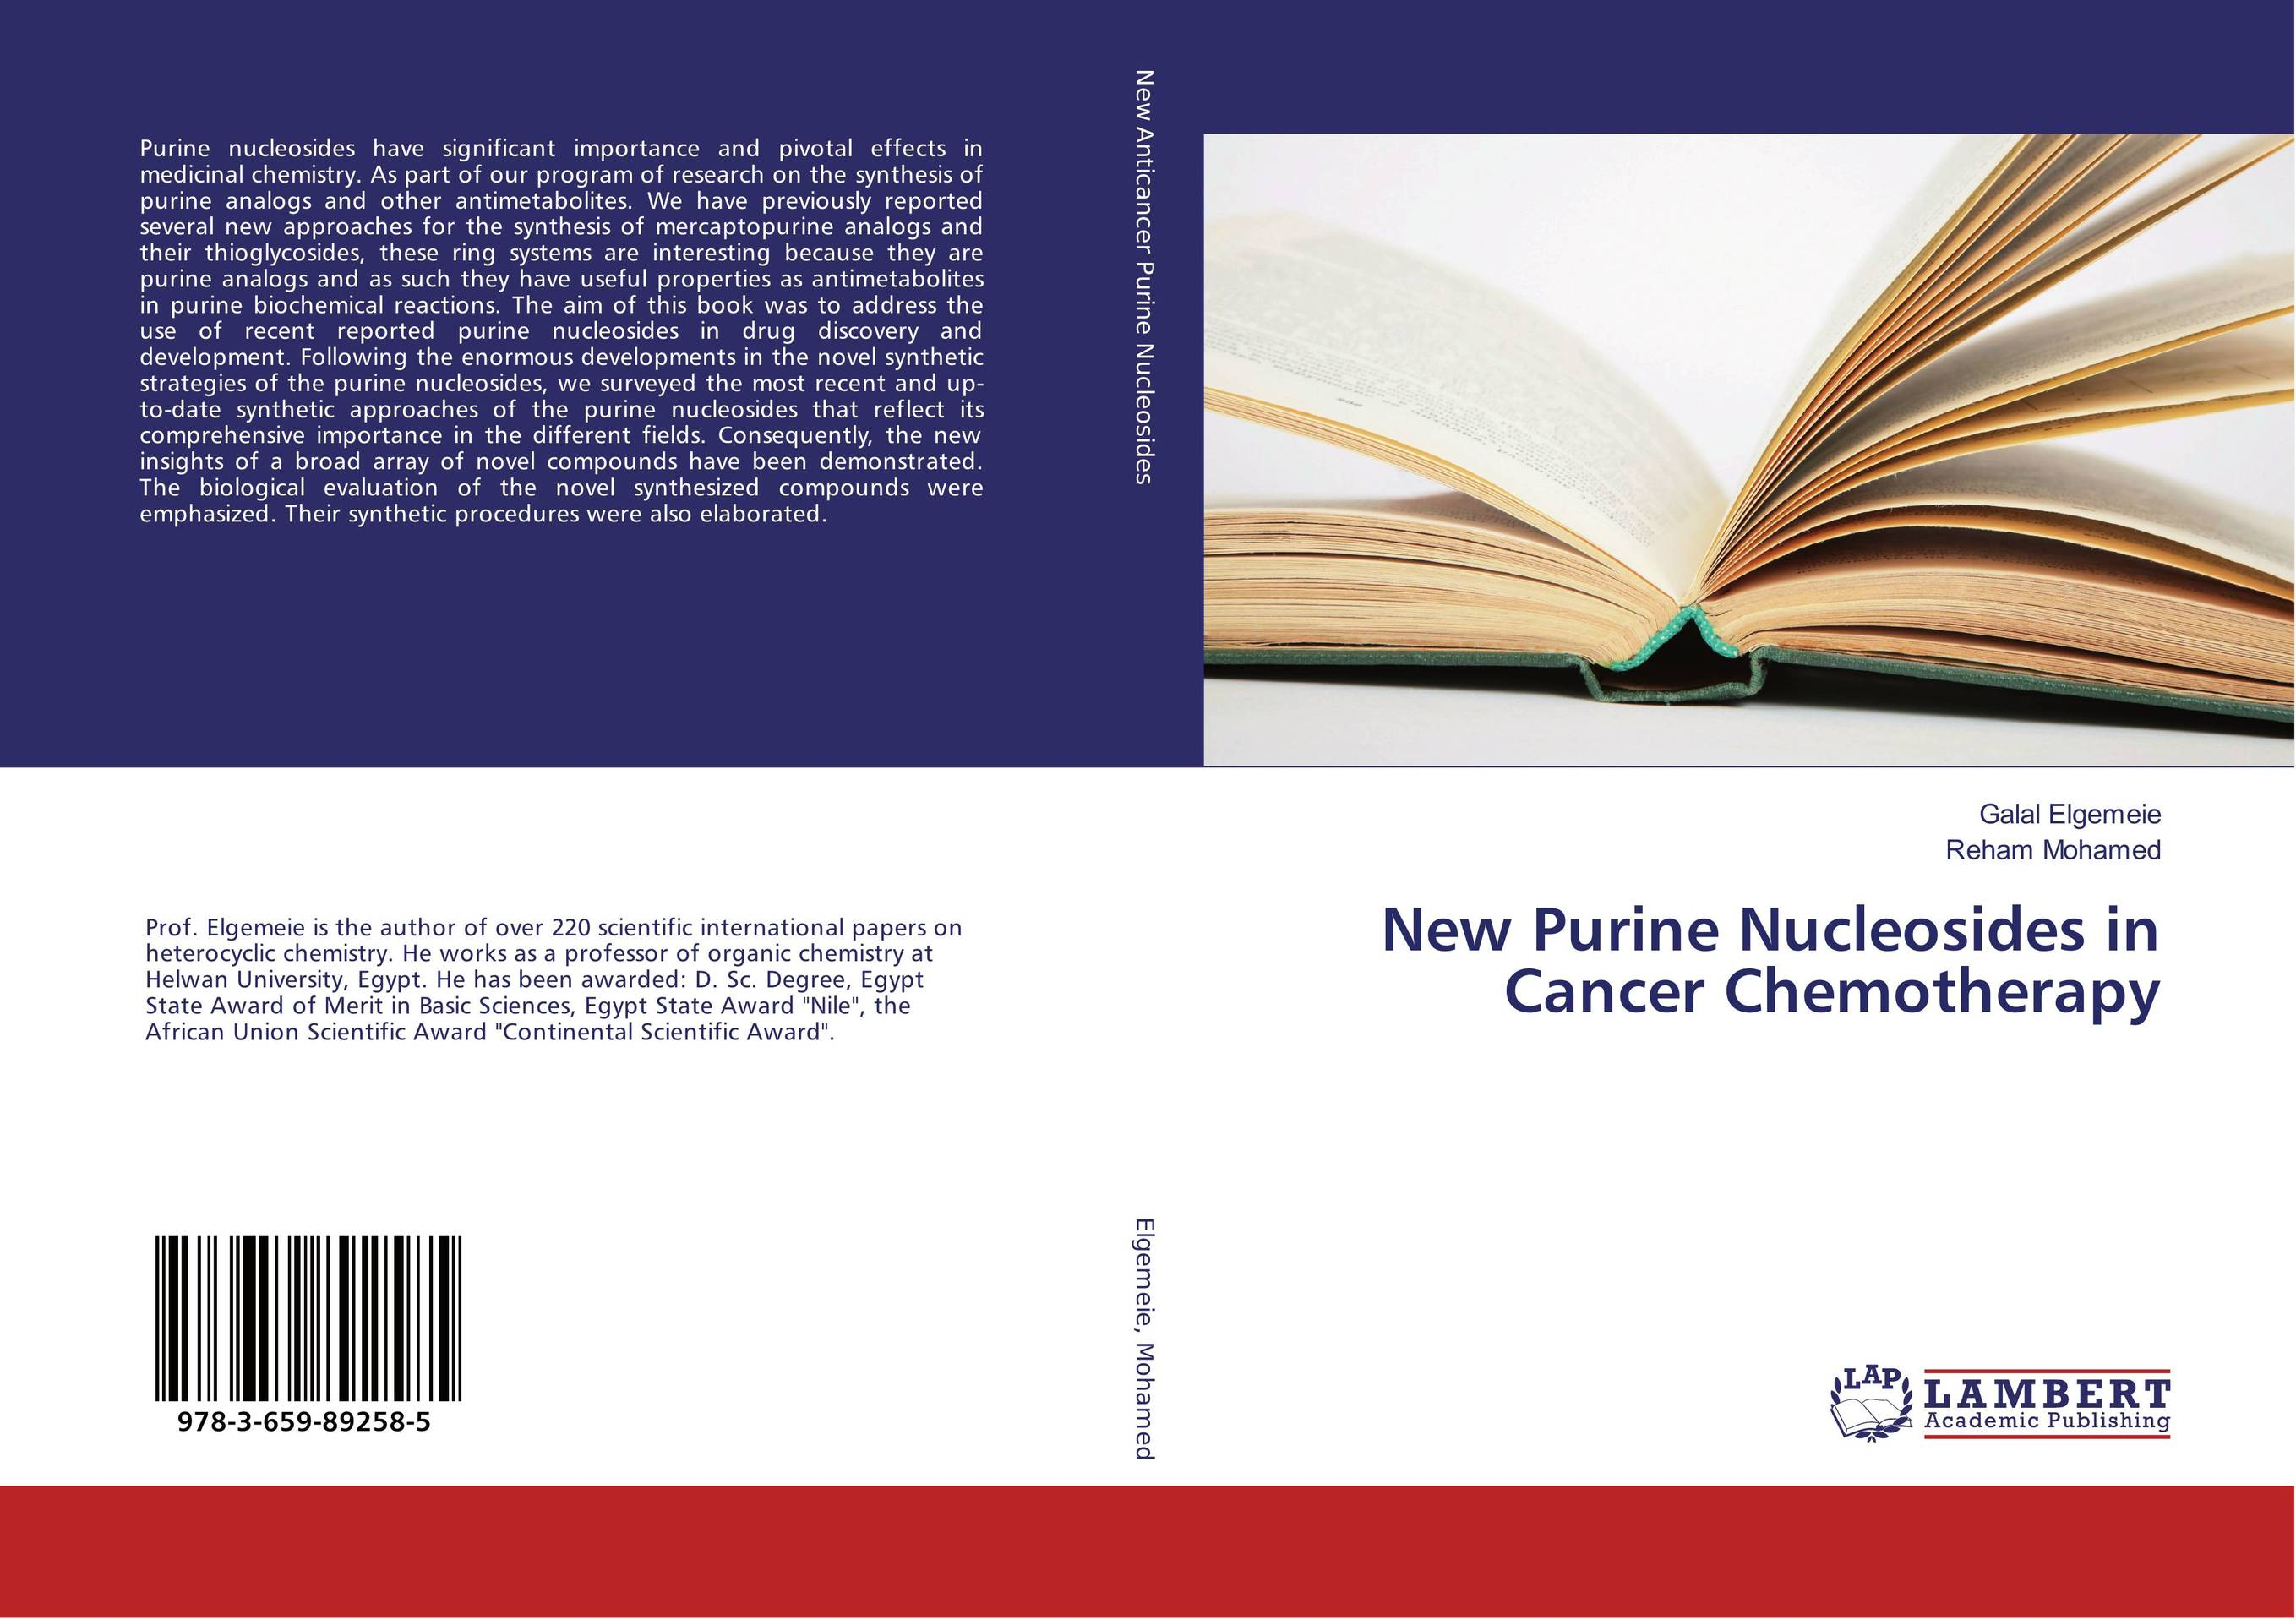 New Purine Nucleosides in Cancer Chemotherapy pain management among colorectal cancer patient on chemotherapy